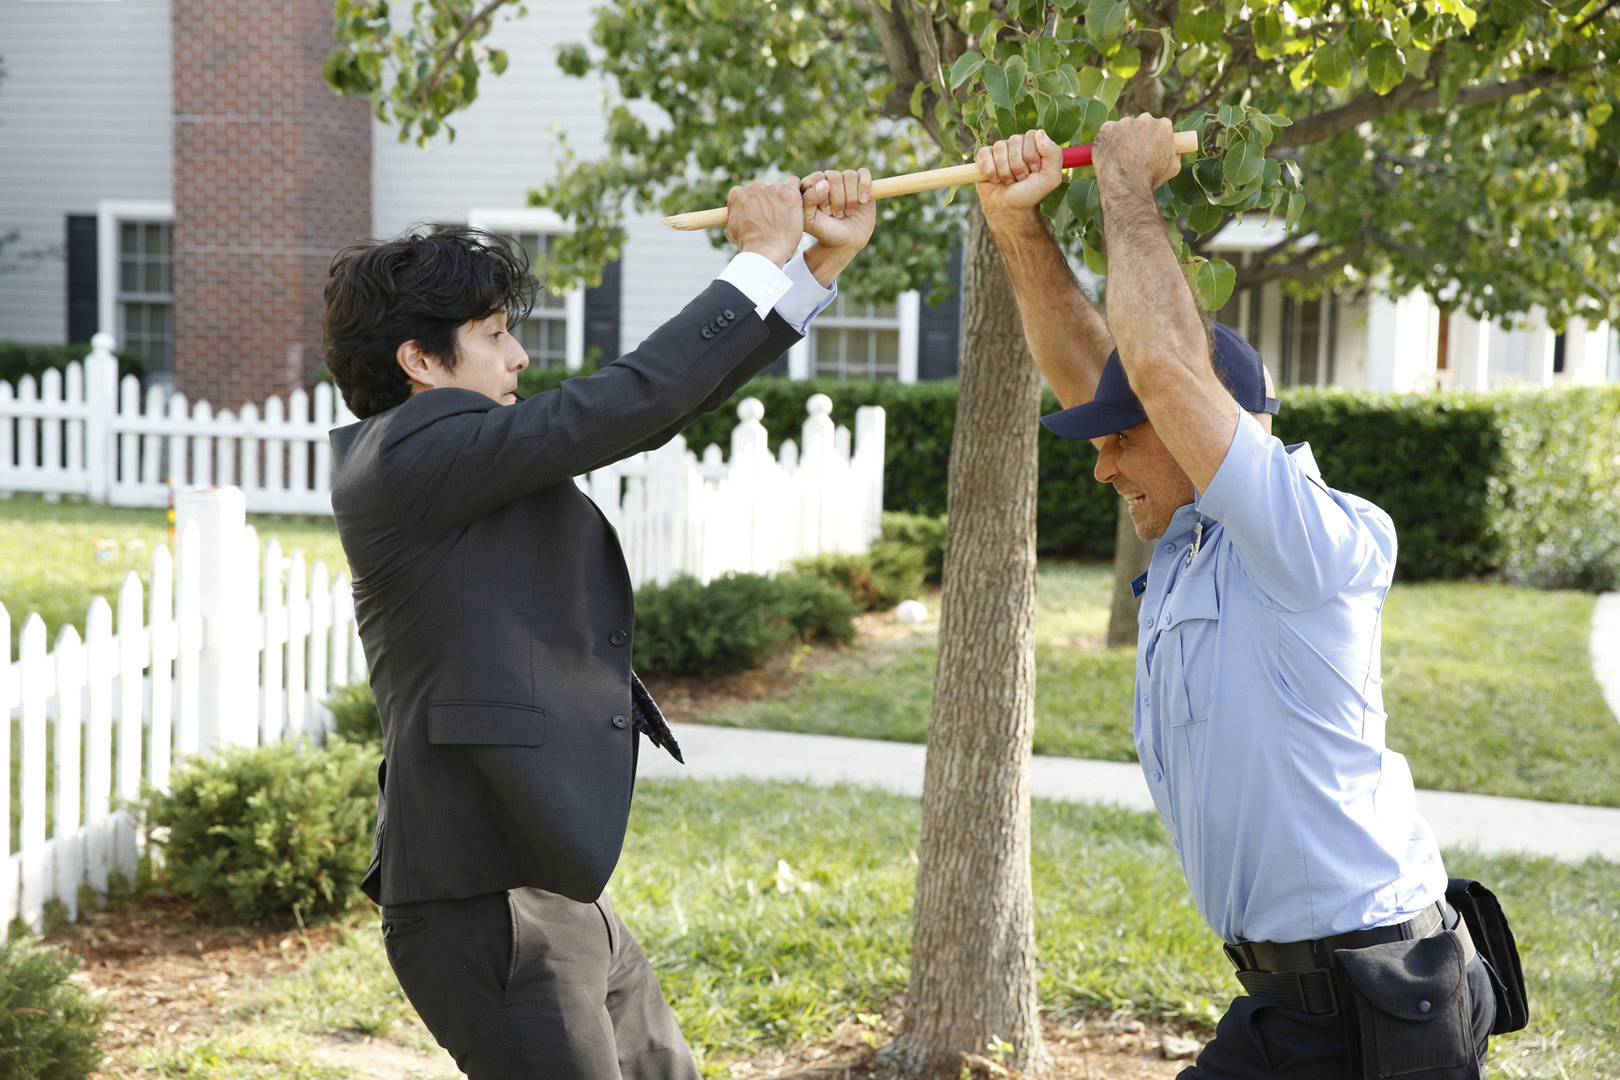 Lee tries to take out a man disguised in uniform.